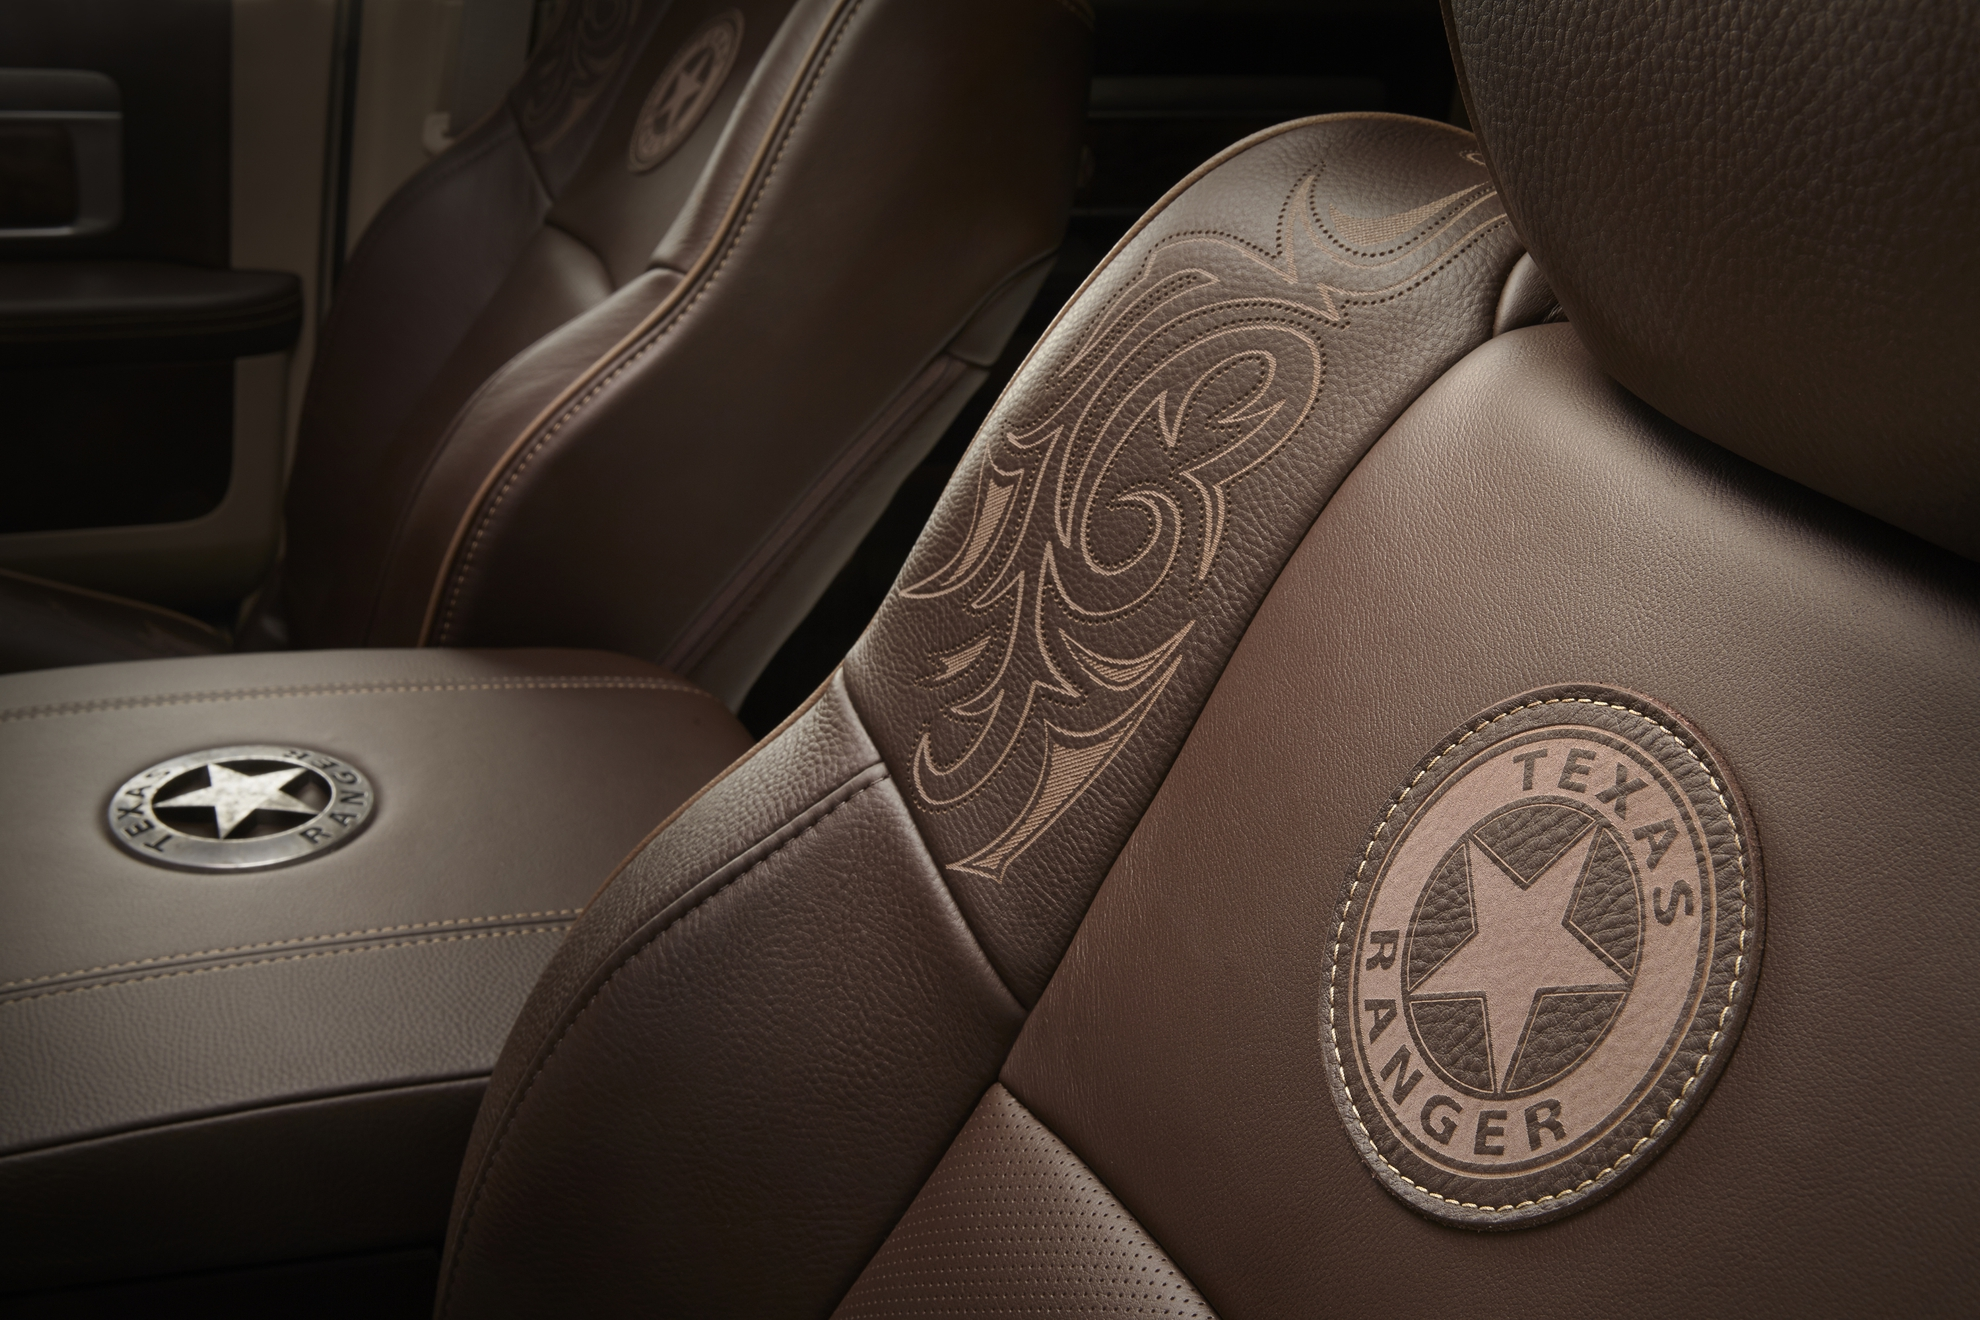 Dodge-Ram-Texas-Ranger-Interior